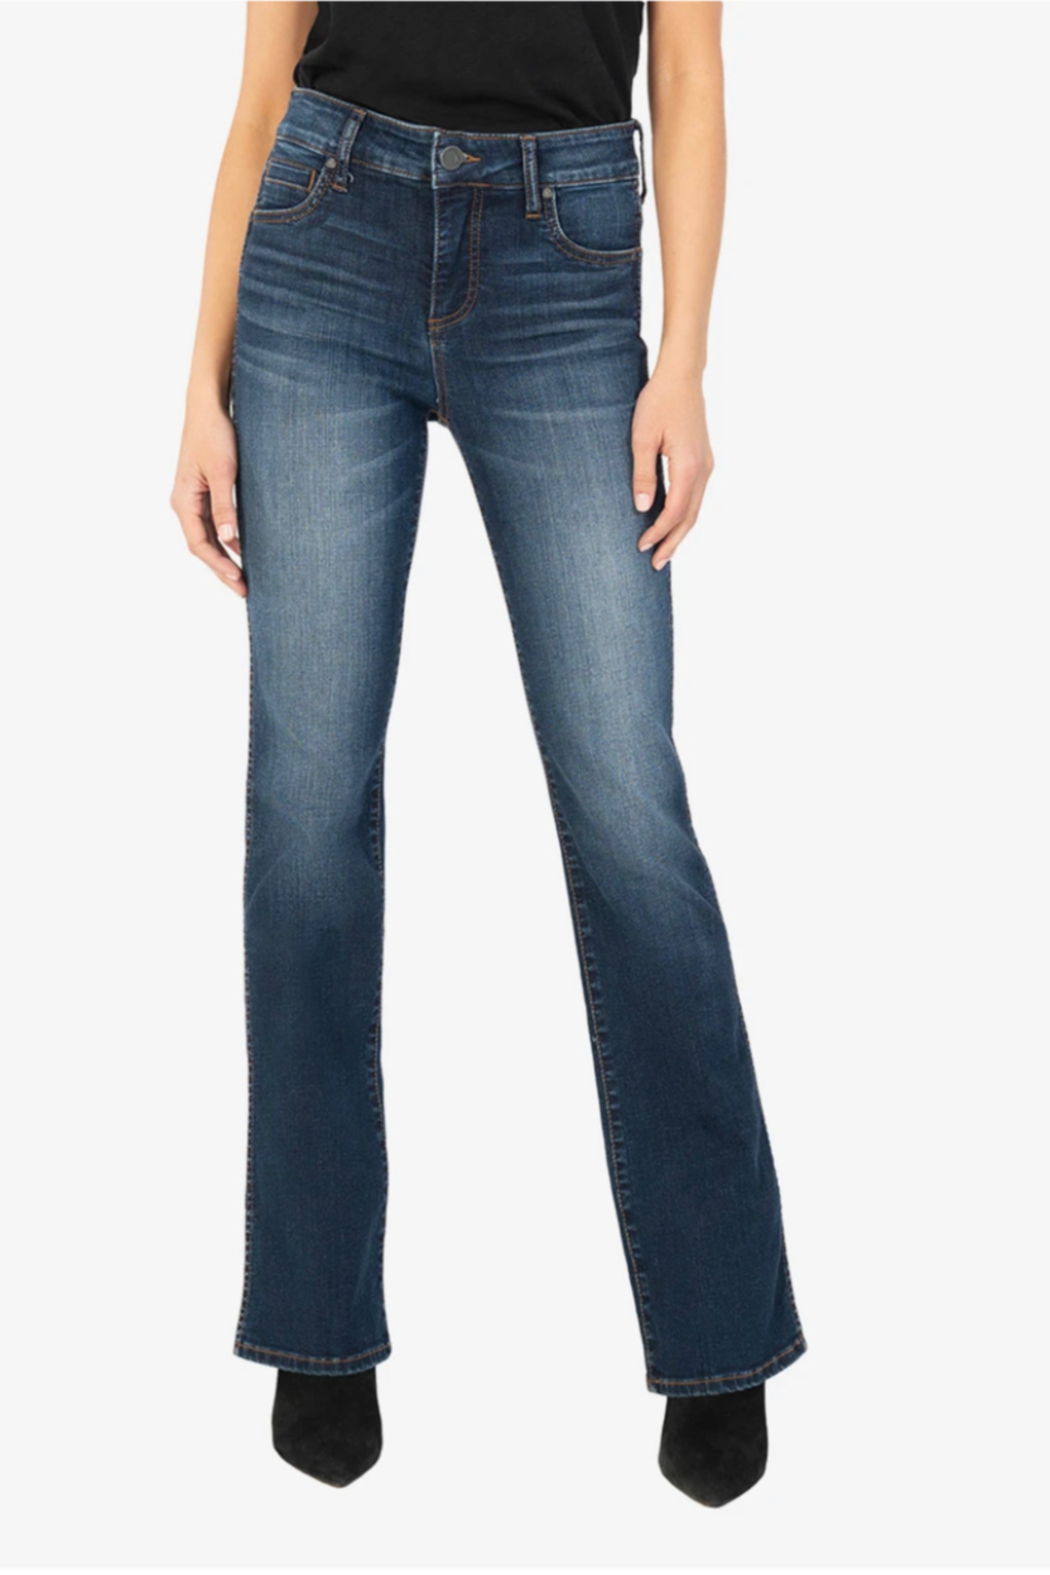 Kut from the Kloth Natalie High Rise Fab Ab - Main Image